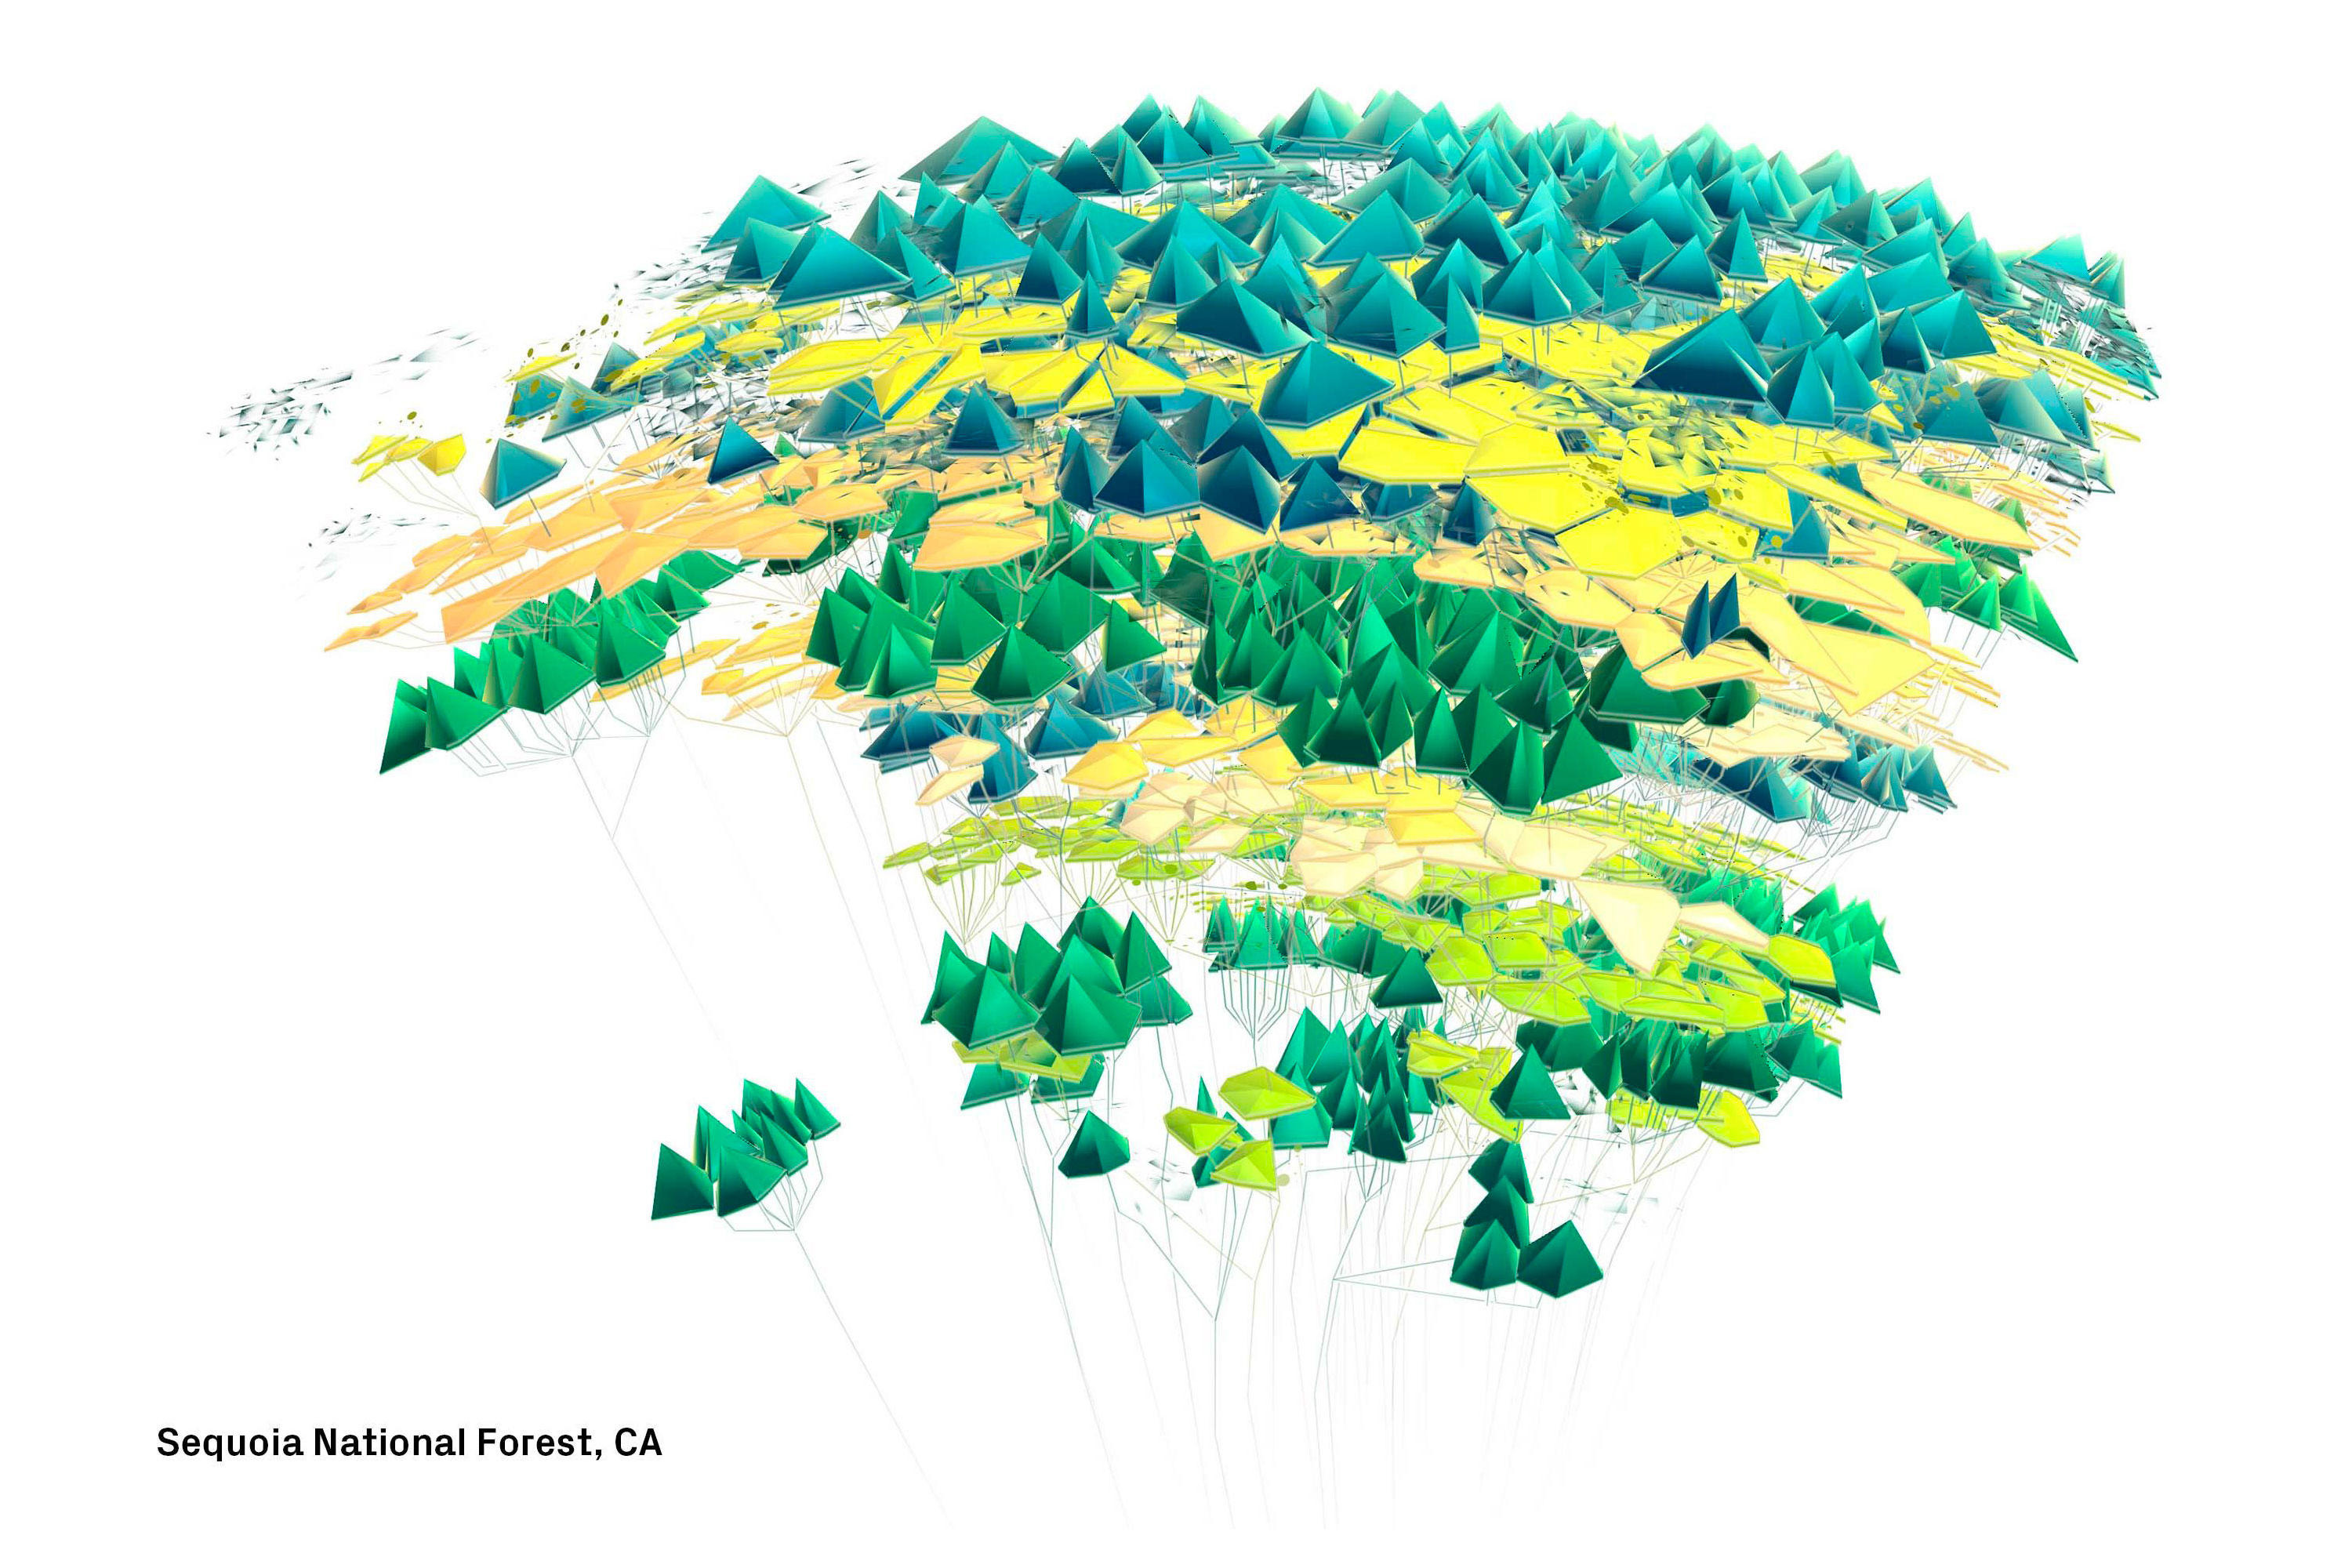 sequoia-national-forest.jpg